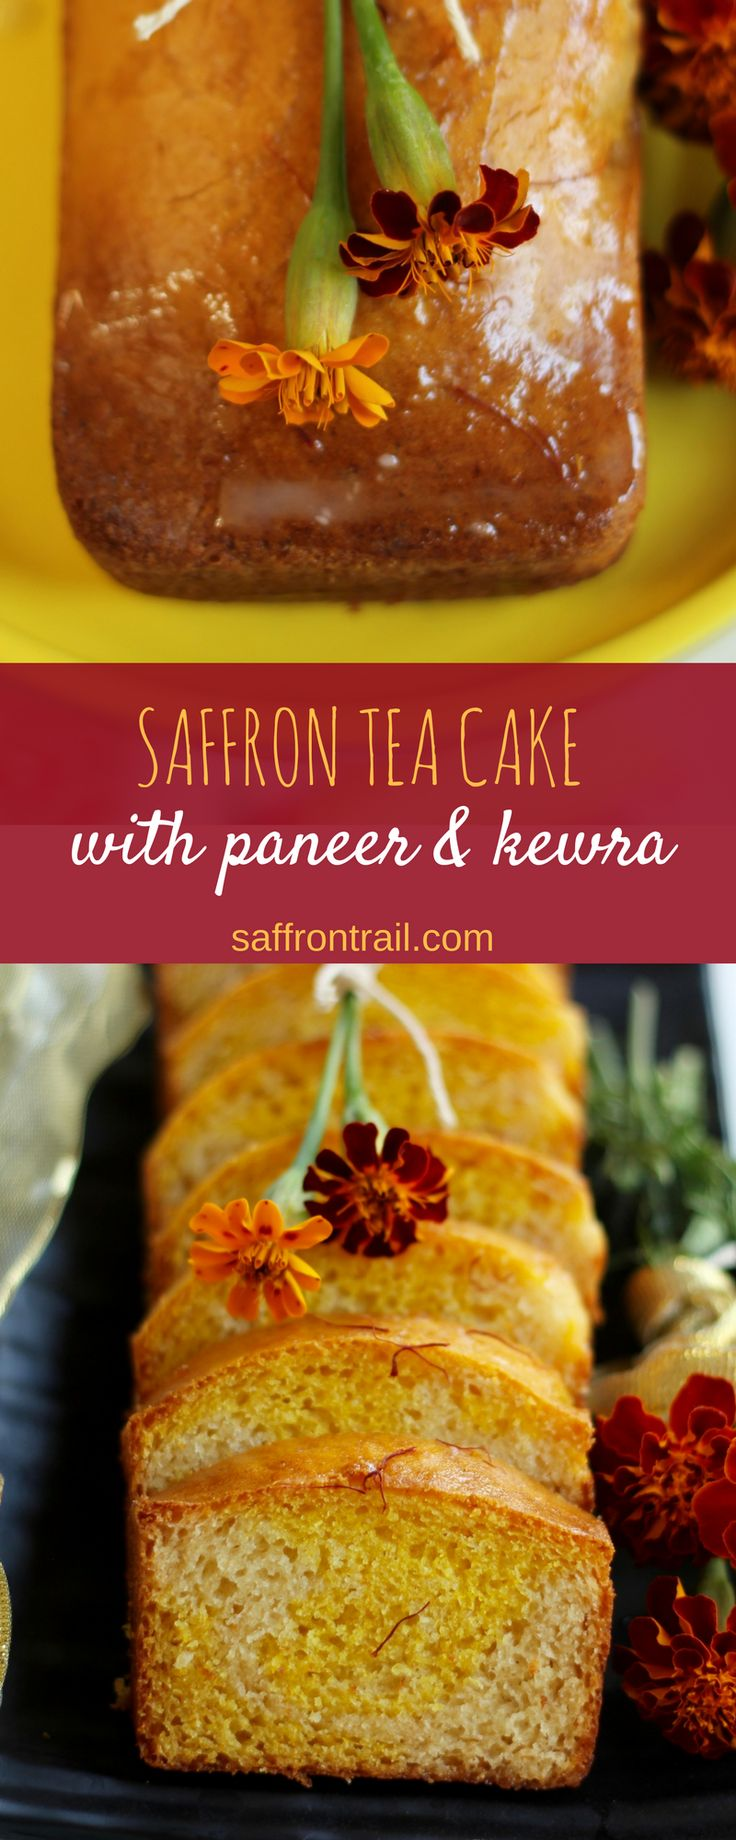 Diwali recipes - A festive tea cake with flavours of saffron and kewra (screwpine) - goes wonderfully with a cup of coffee and tea. No eggs used.